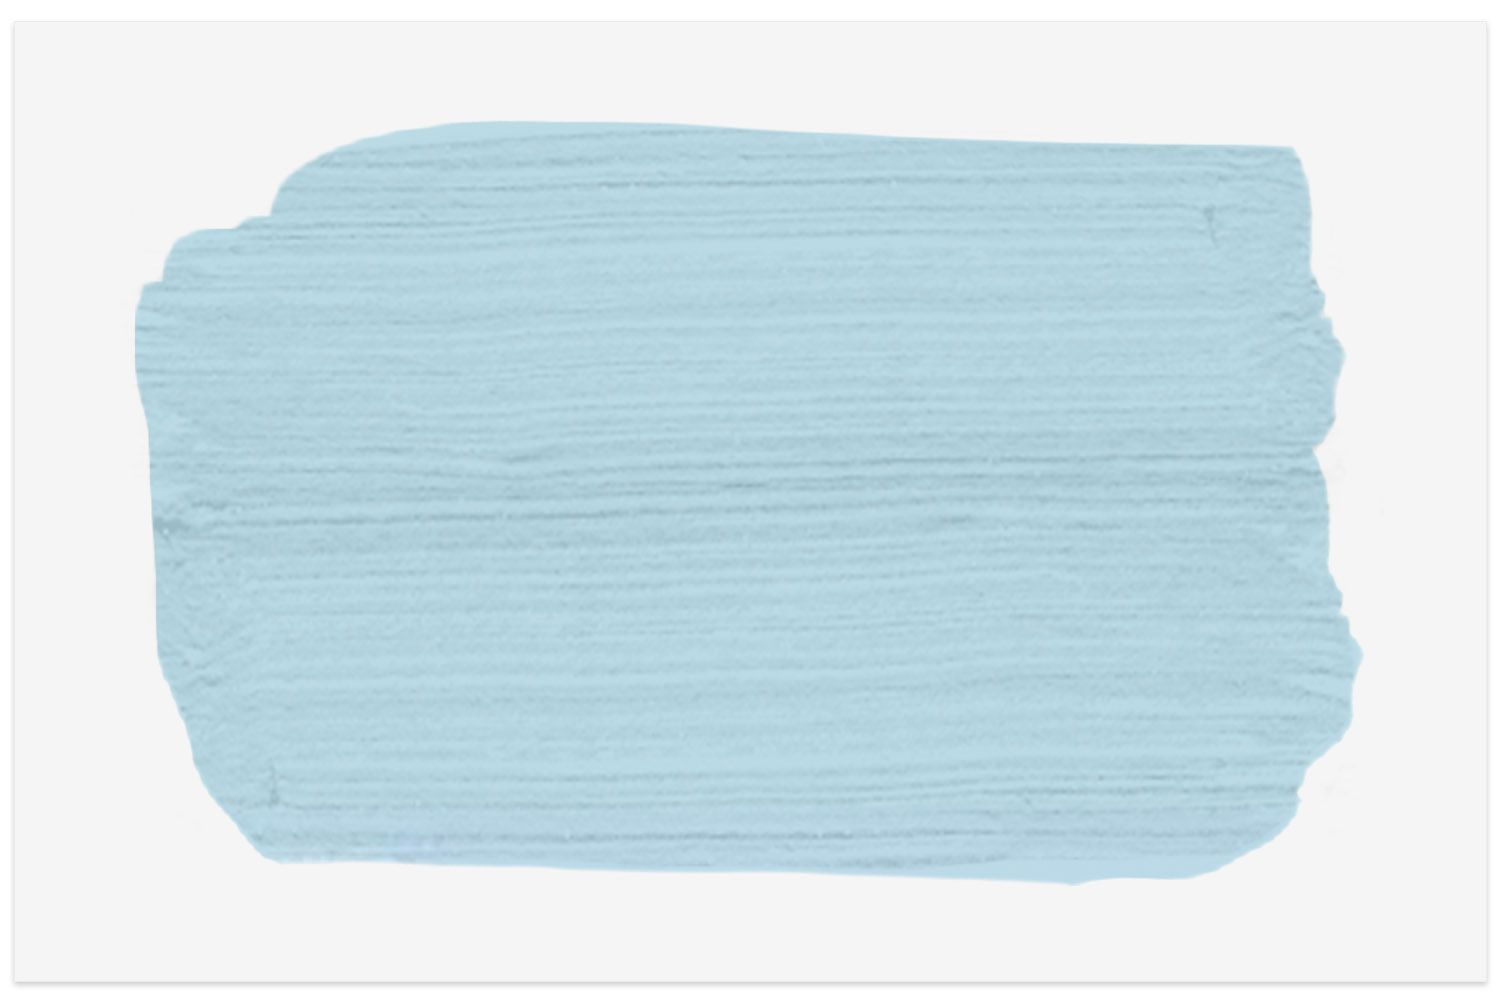 Behr Serene Sky paint swatch for ceiling color inspiration